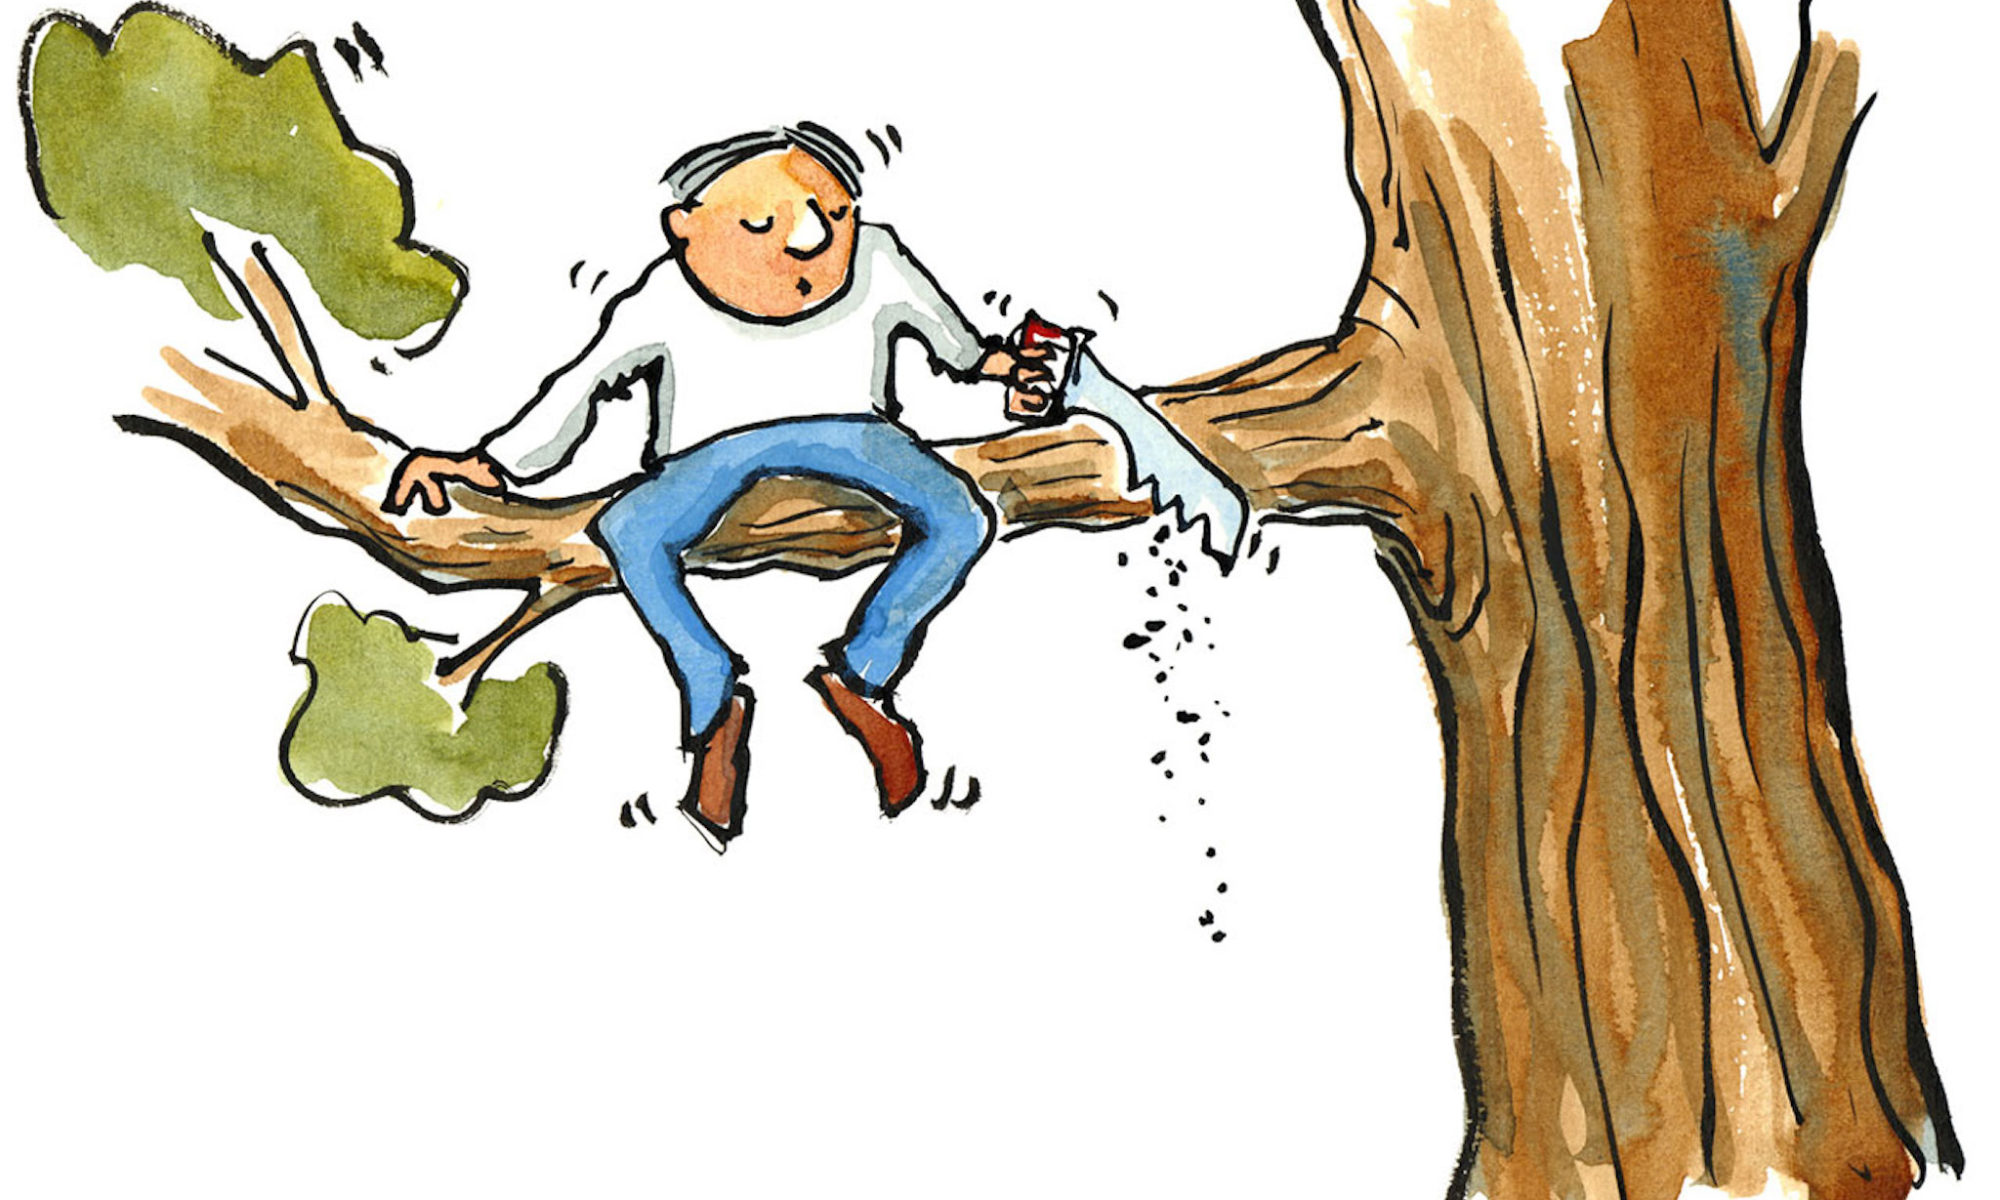 drawing of man sitting on side of tree branch that he's cutting off